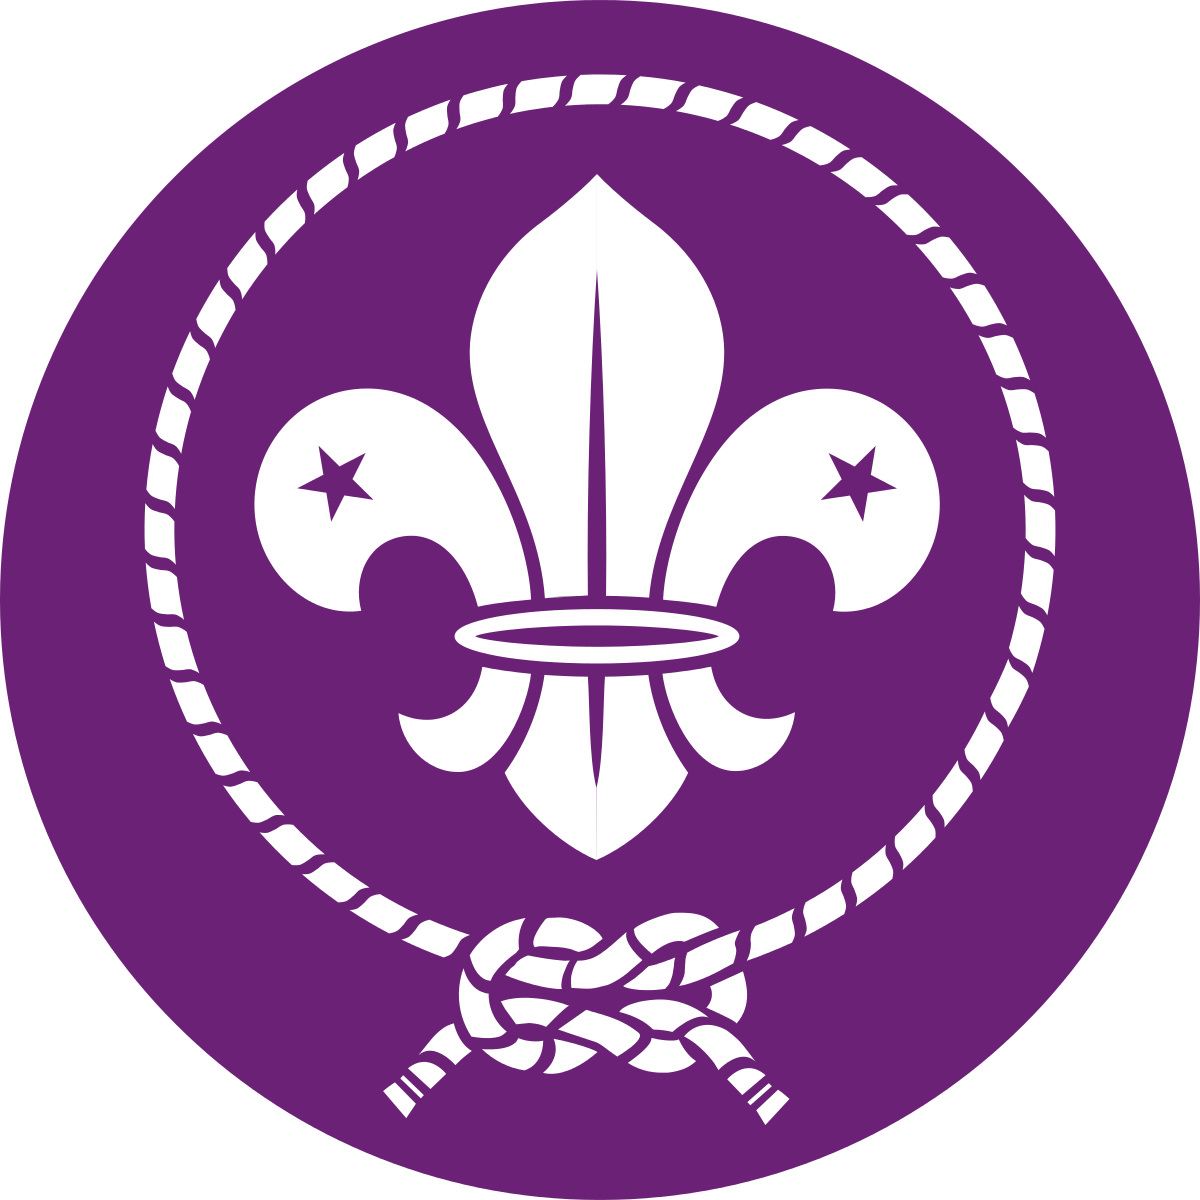 23rd European Scout Conference